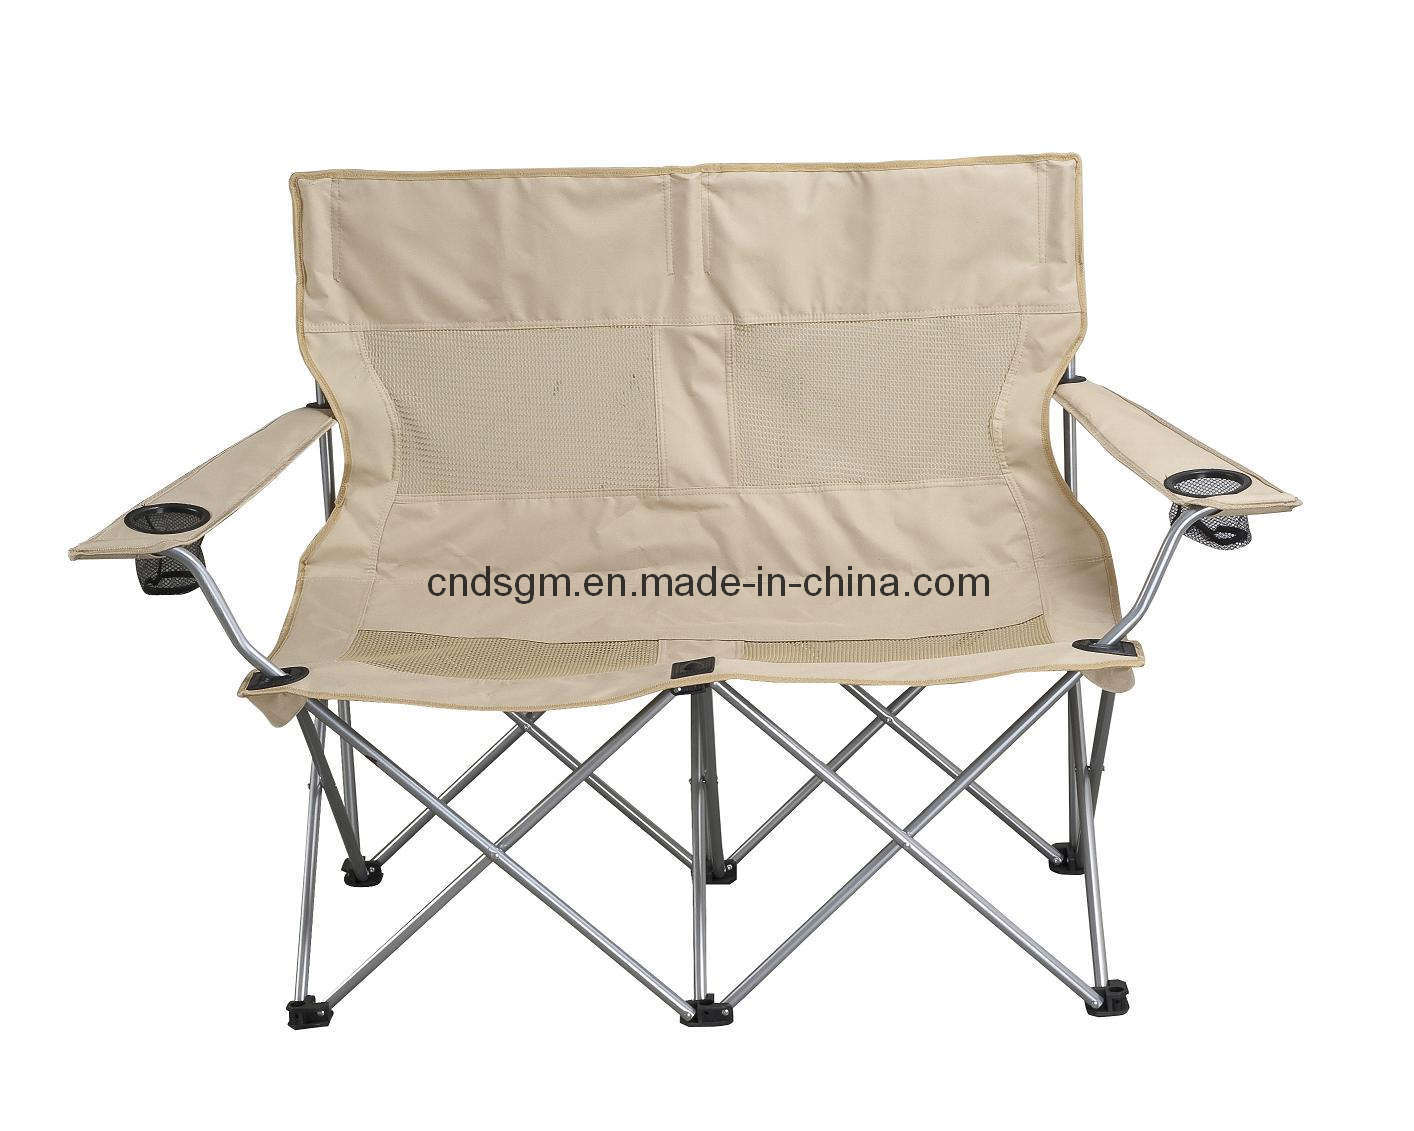 China Folding Camping Chair Double Seats DS 5002A China Beach Chair Fold